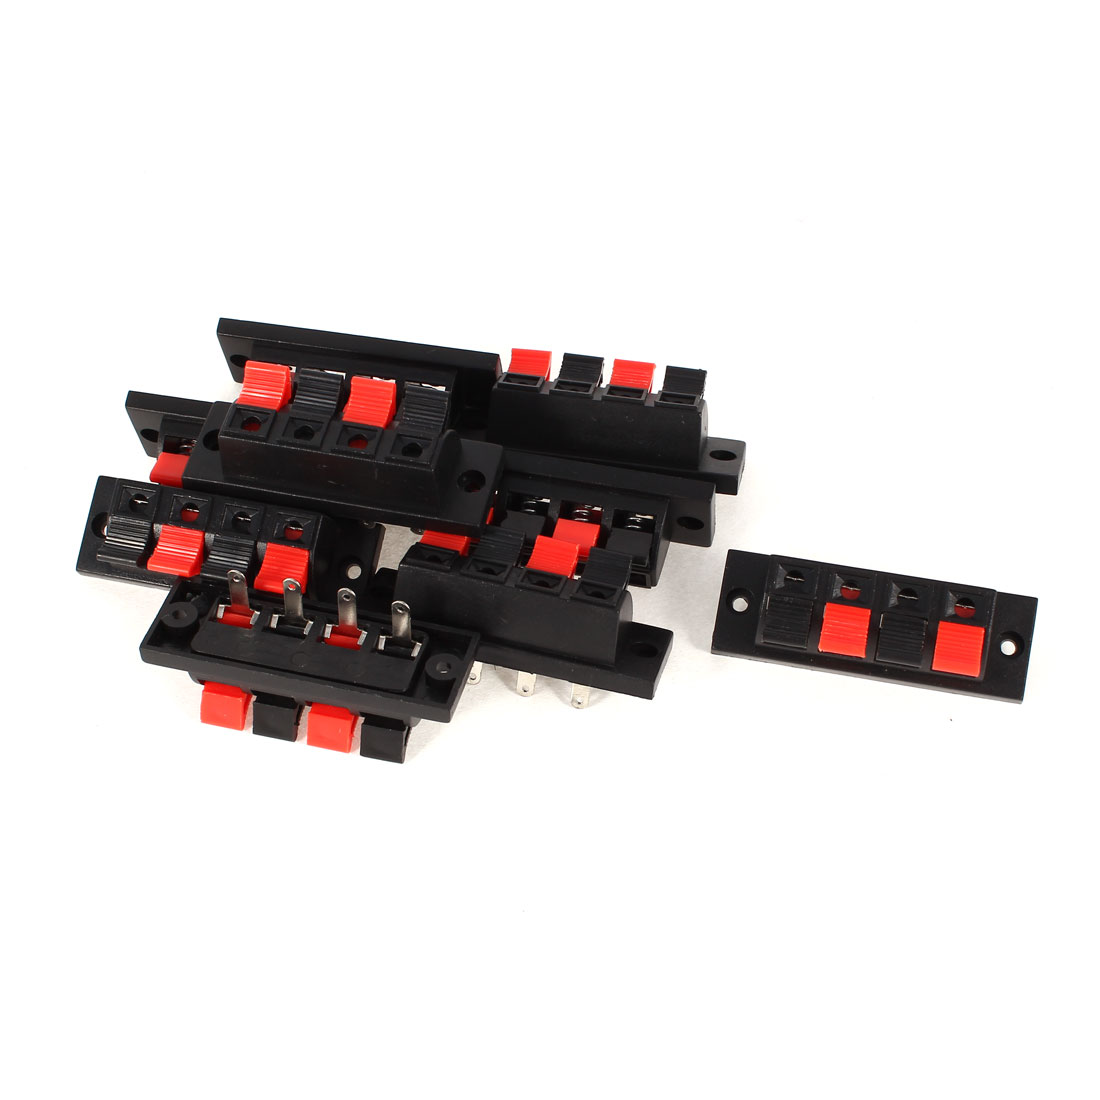 10Pcs 4 Terminals Spring Speaker Binding Post Terminal Board Red Black